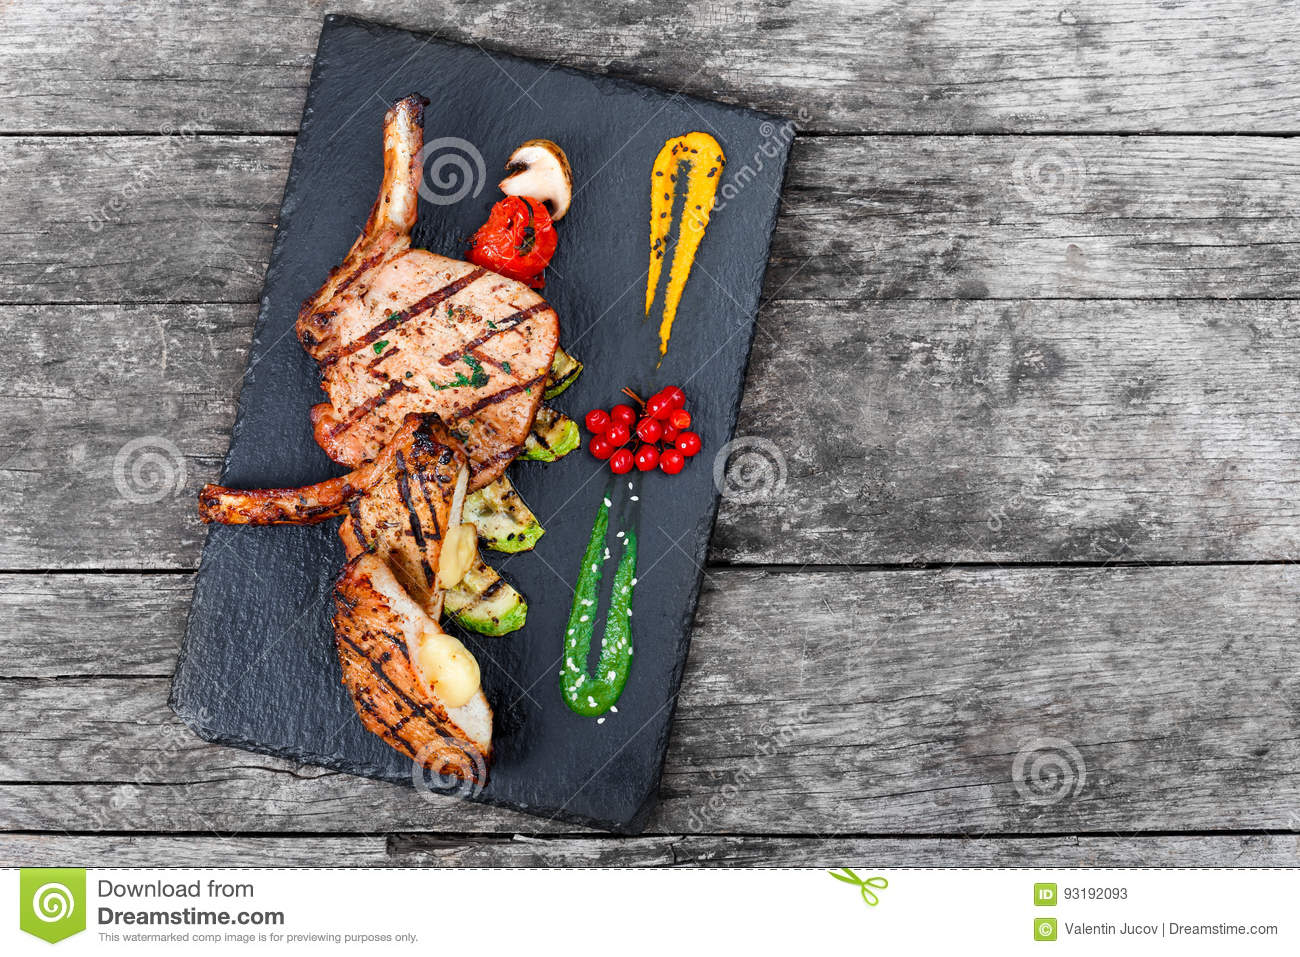 Roasted Pork steak on bone stuffed with cheese, grilled vegetables and berries on stone slate background on wooden background